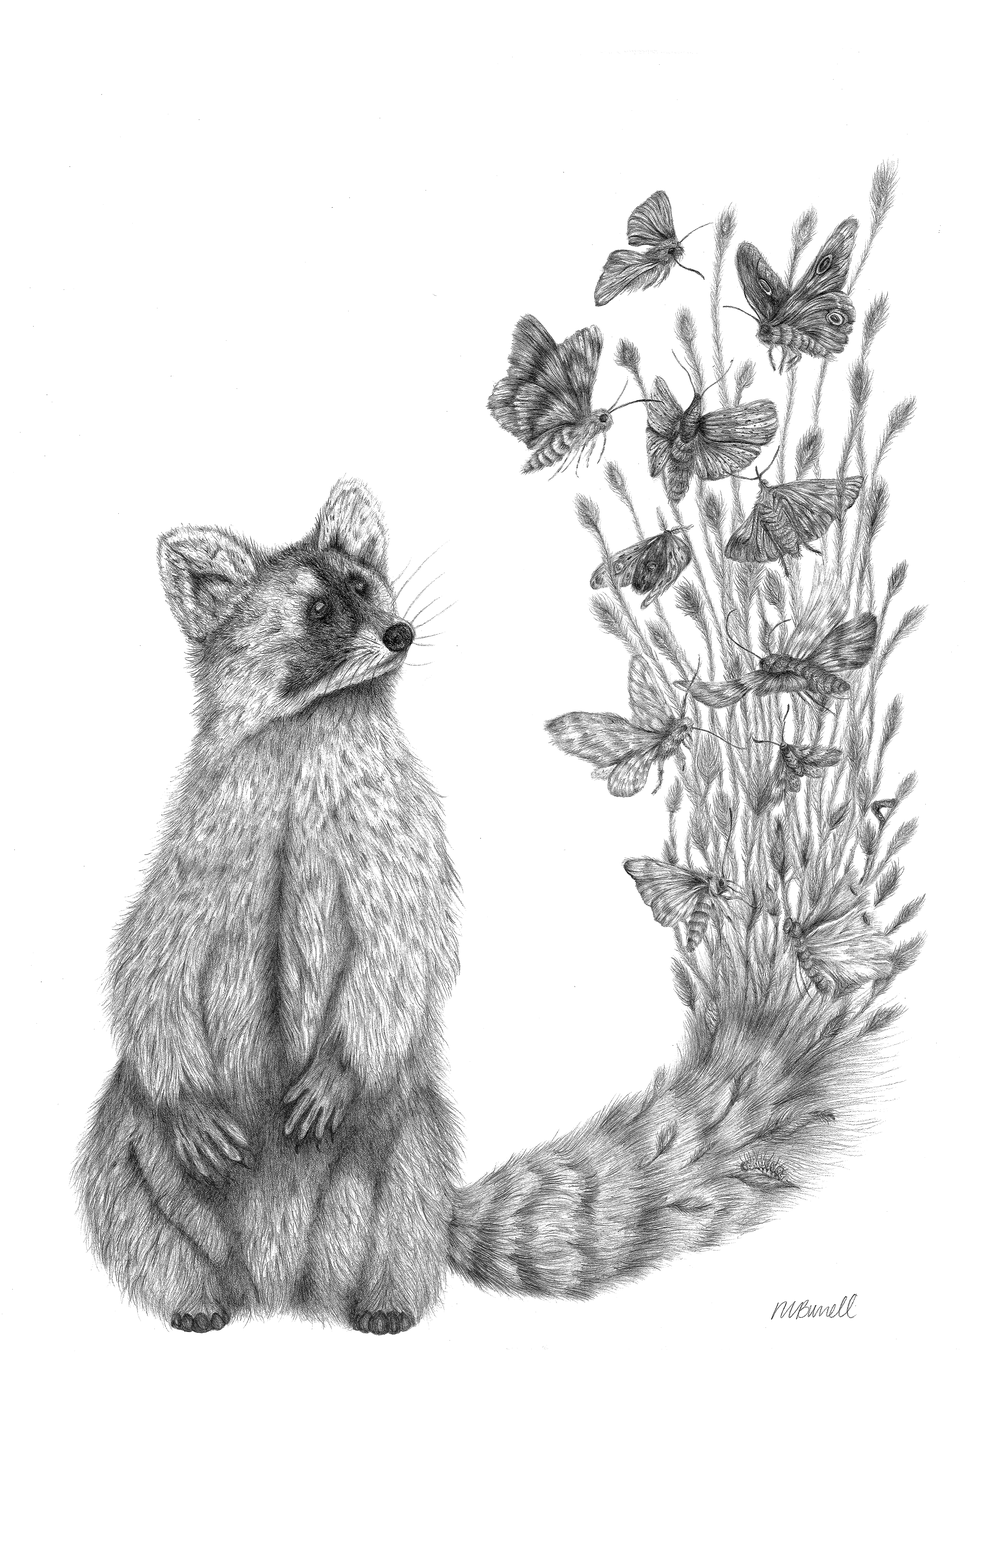 "Ricky Raccoon, graphite drawing on paper, 24"" x 18"",  2016, and is part of the Migration   Series."